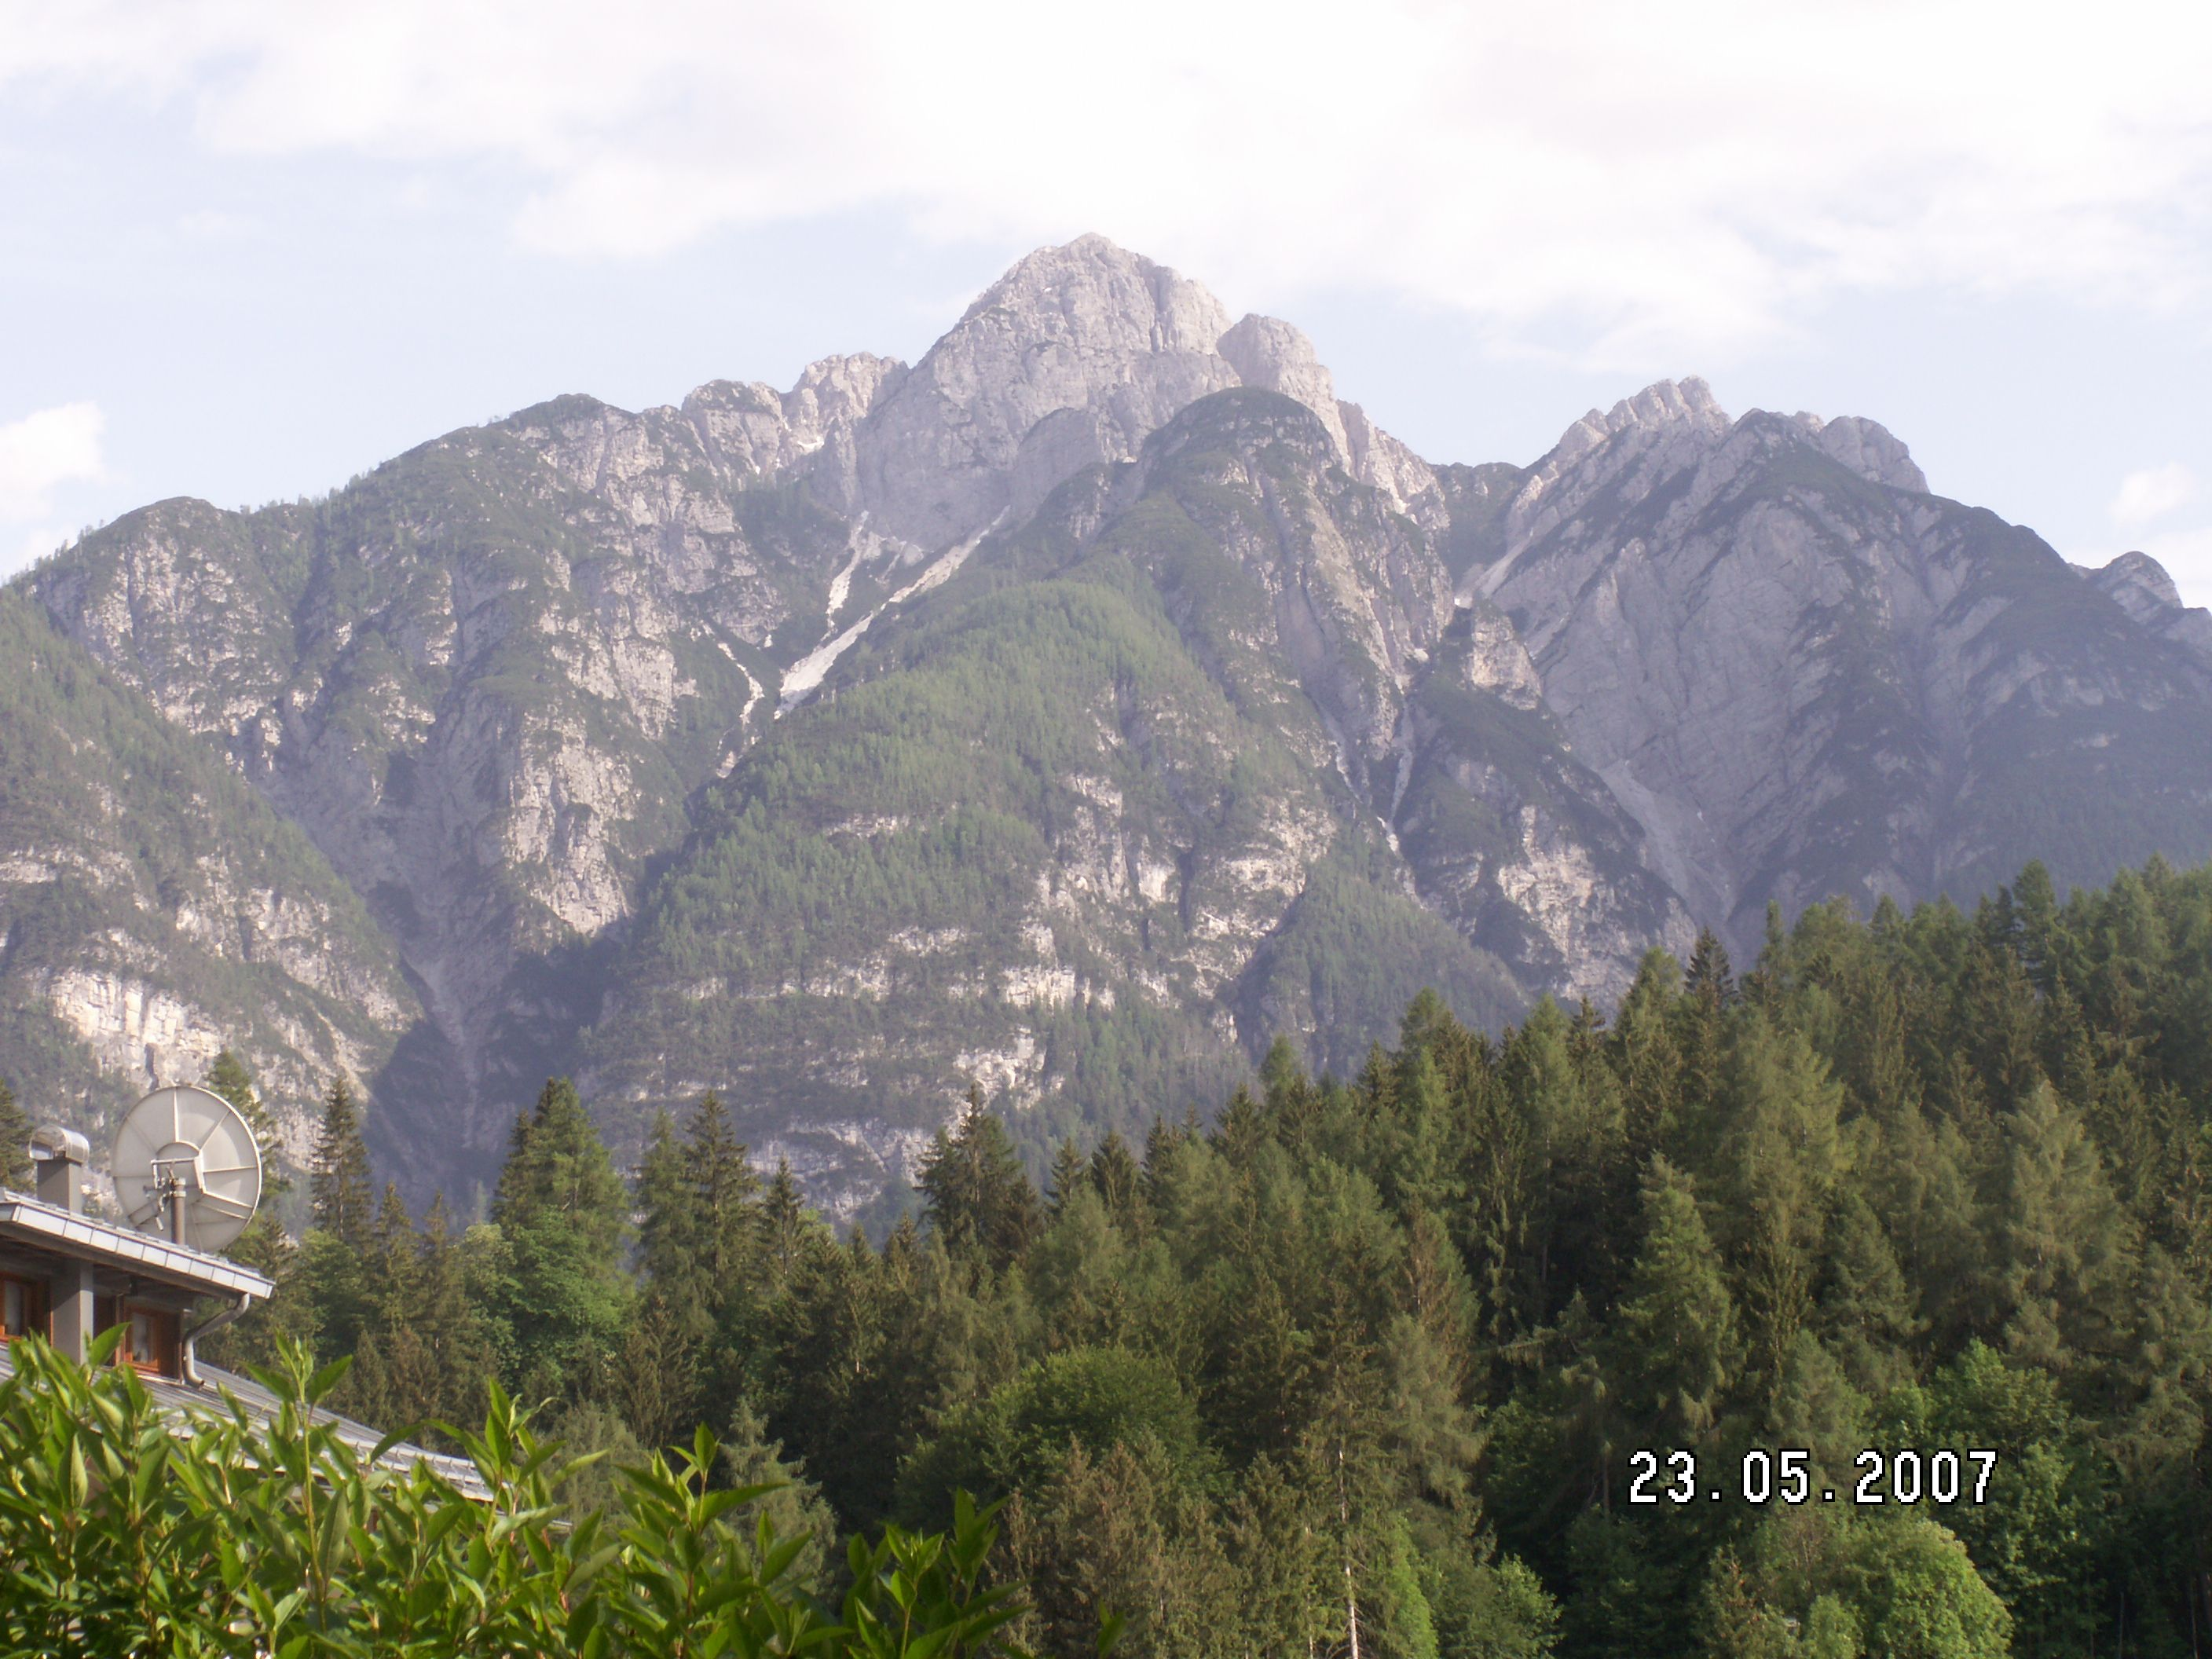 The Dolomite mountains